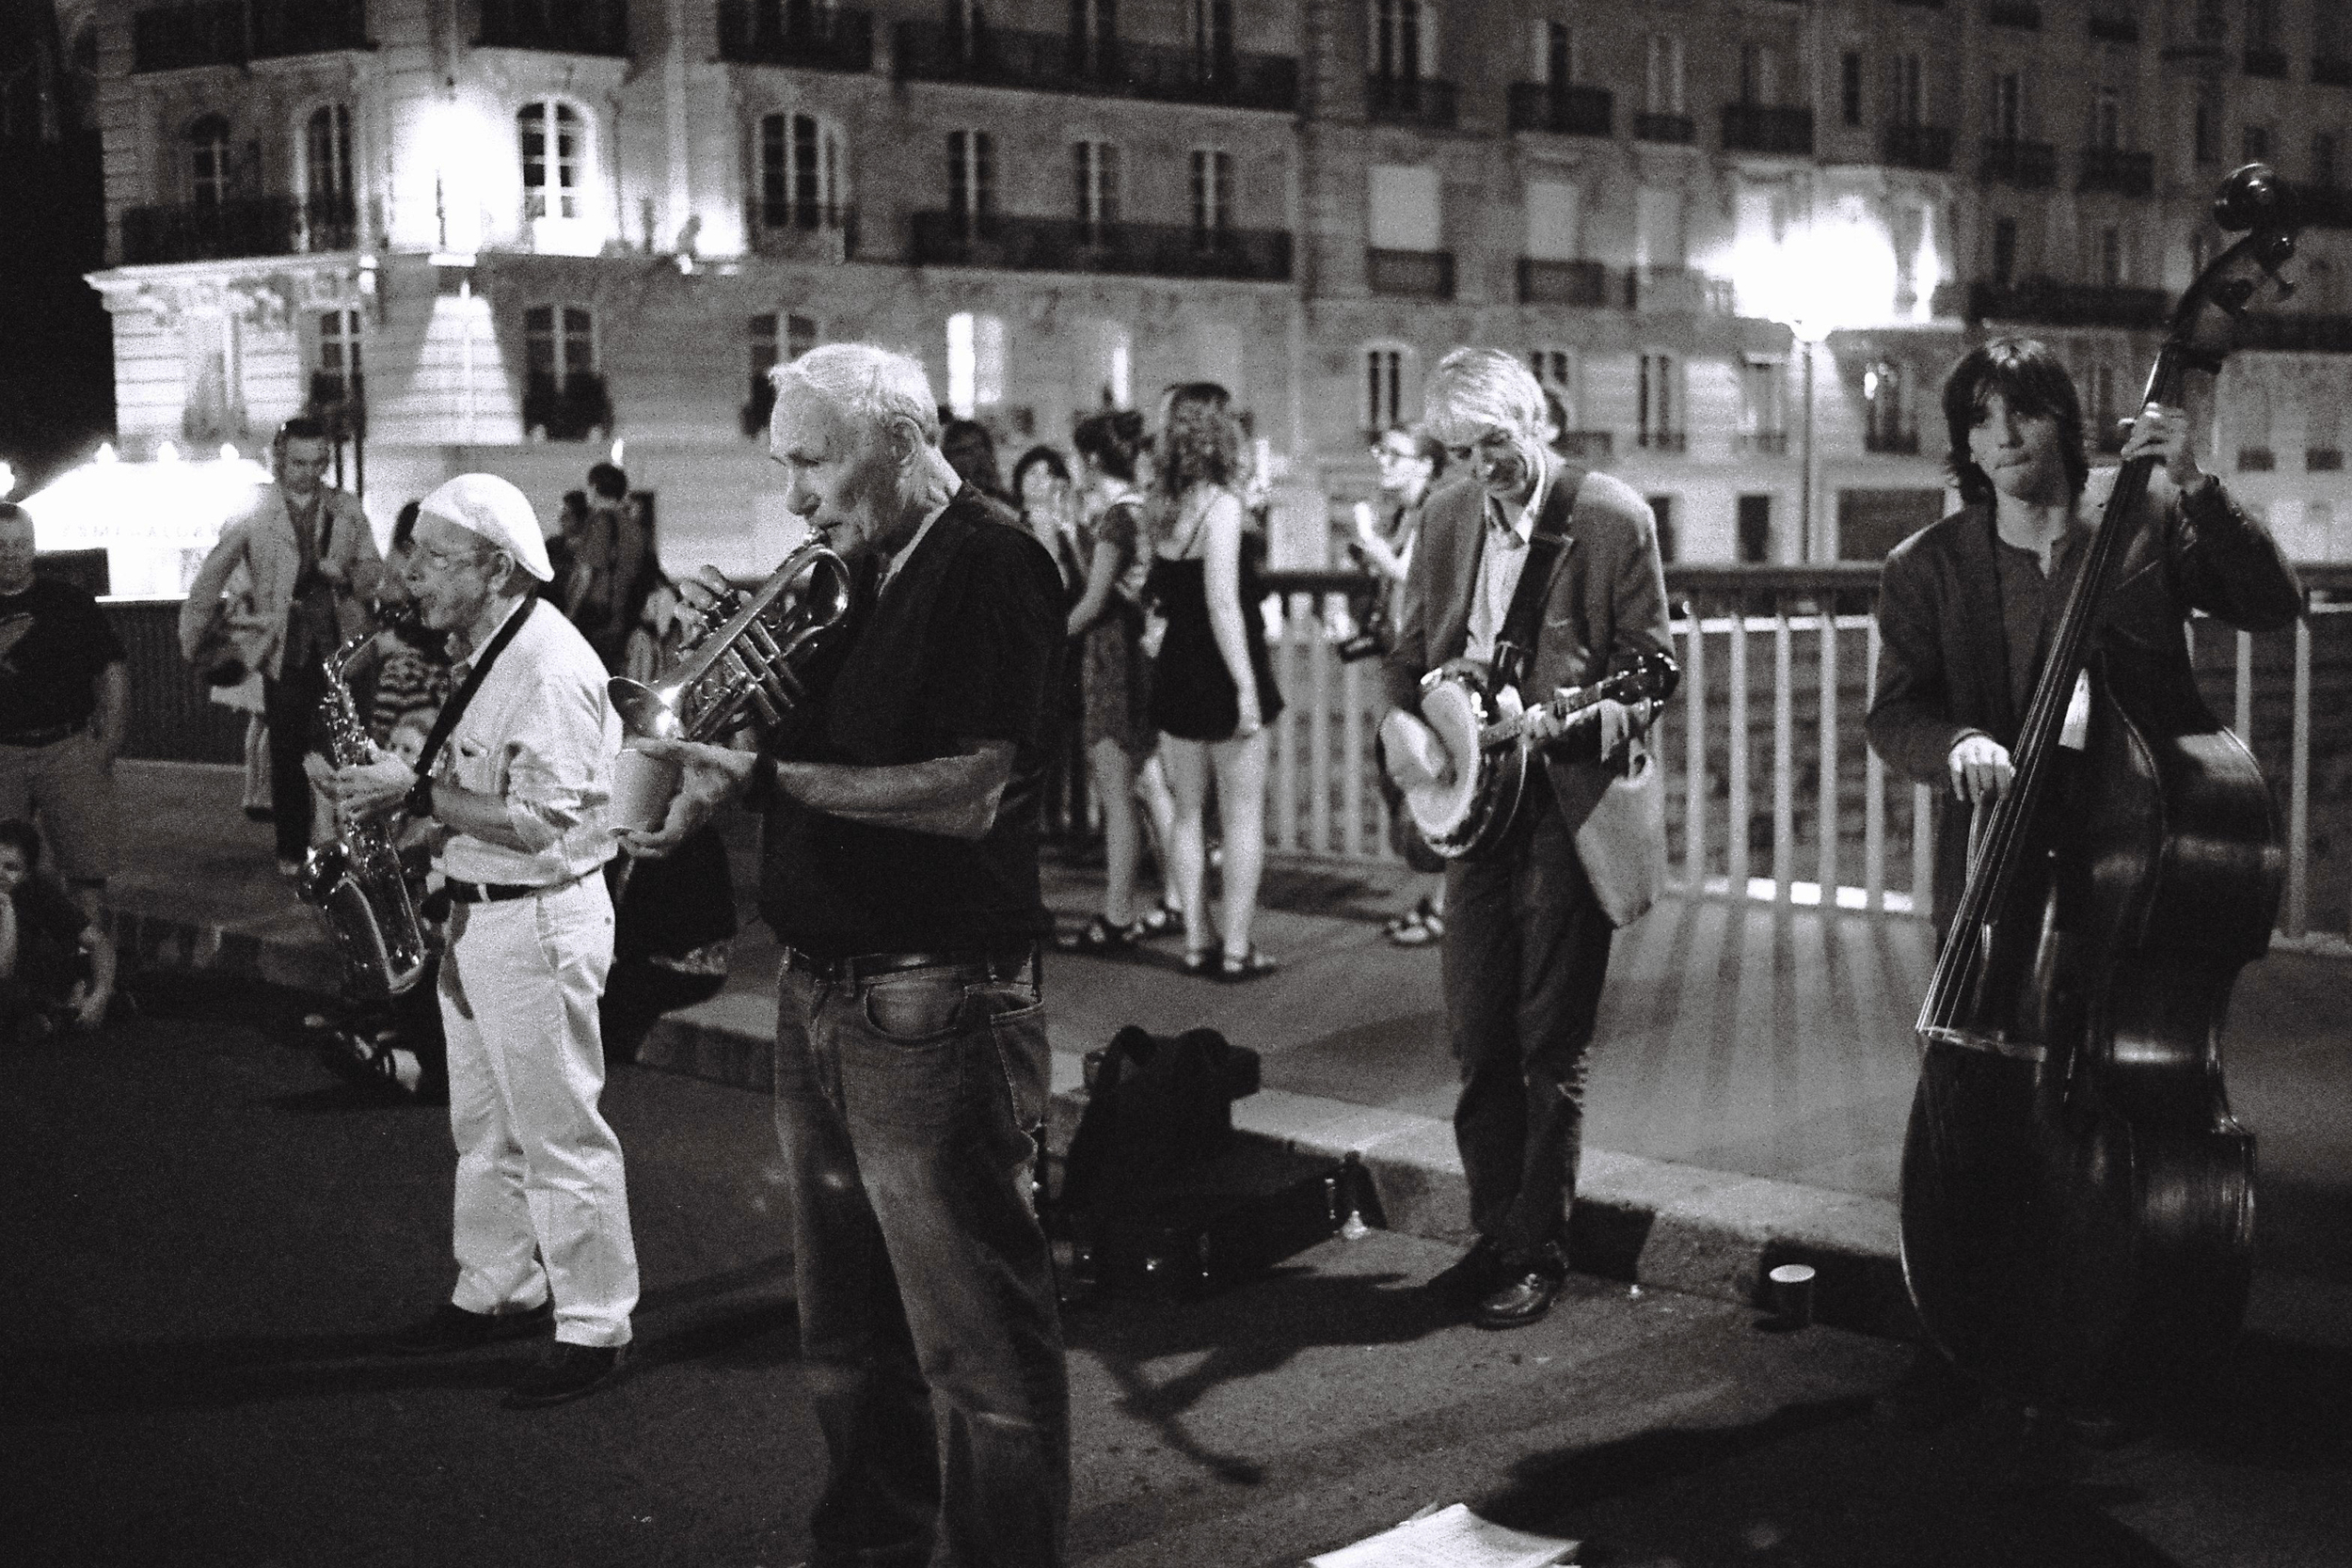 Musicians performing on the bridge (2012)